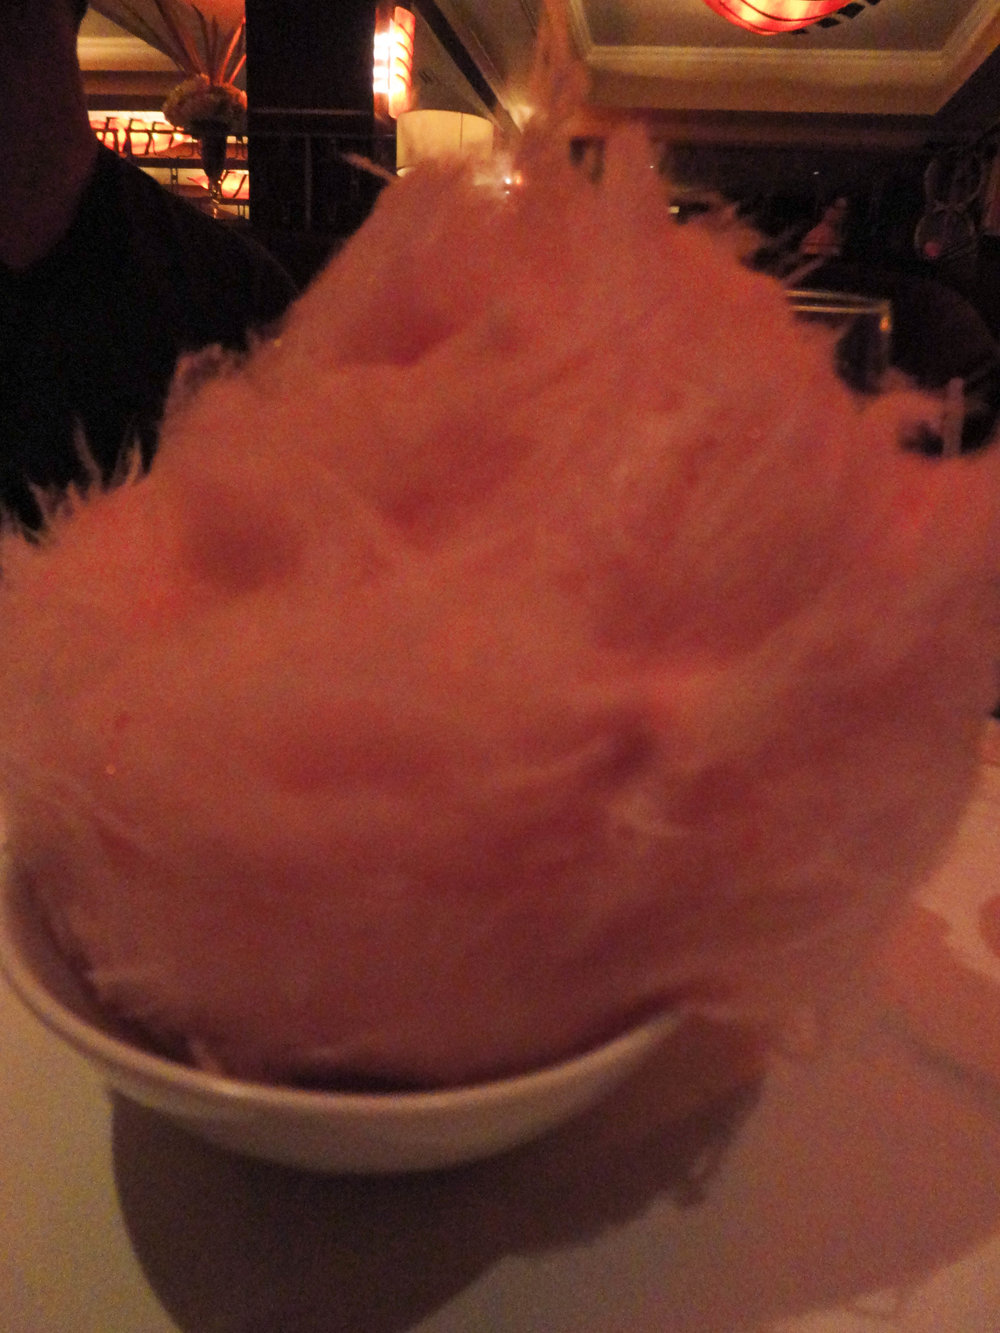 Cotton Candy @ 19 Kitchen & Bar